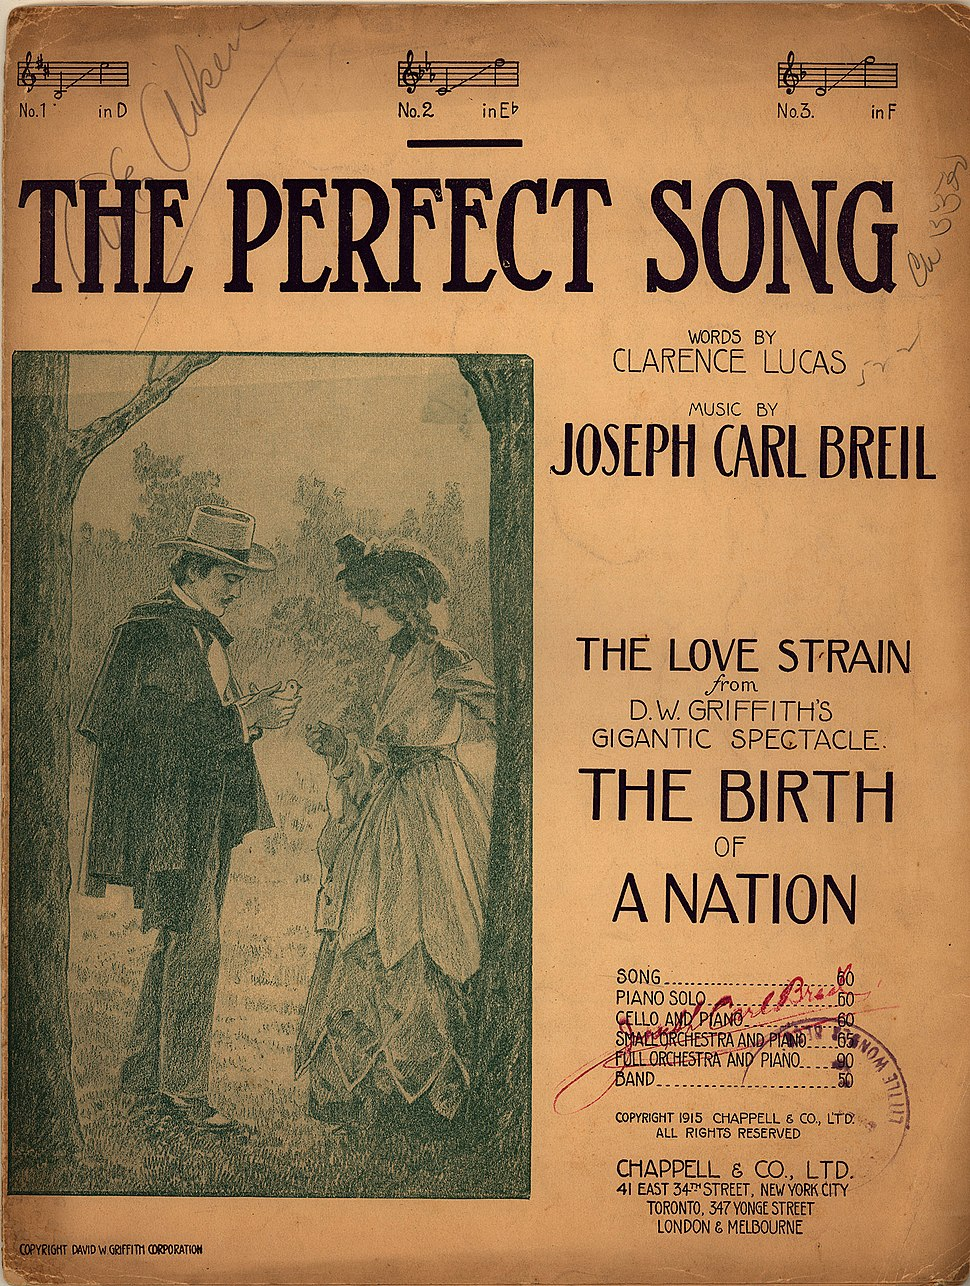 Sheet music for %22The Perfect Song%22 from The Birth of a Nation